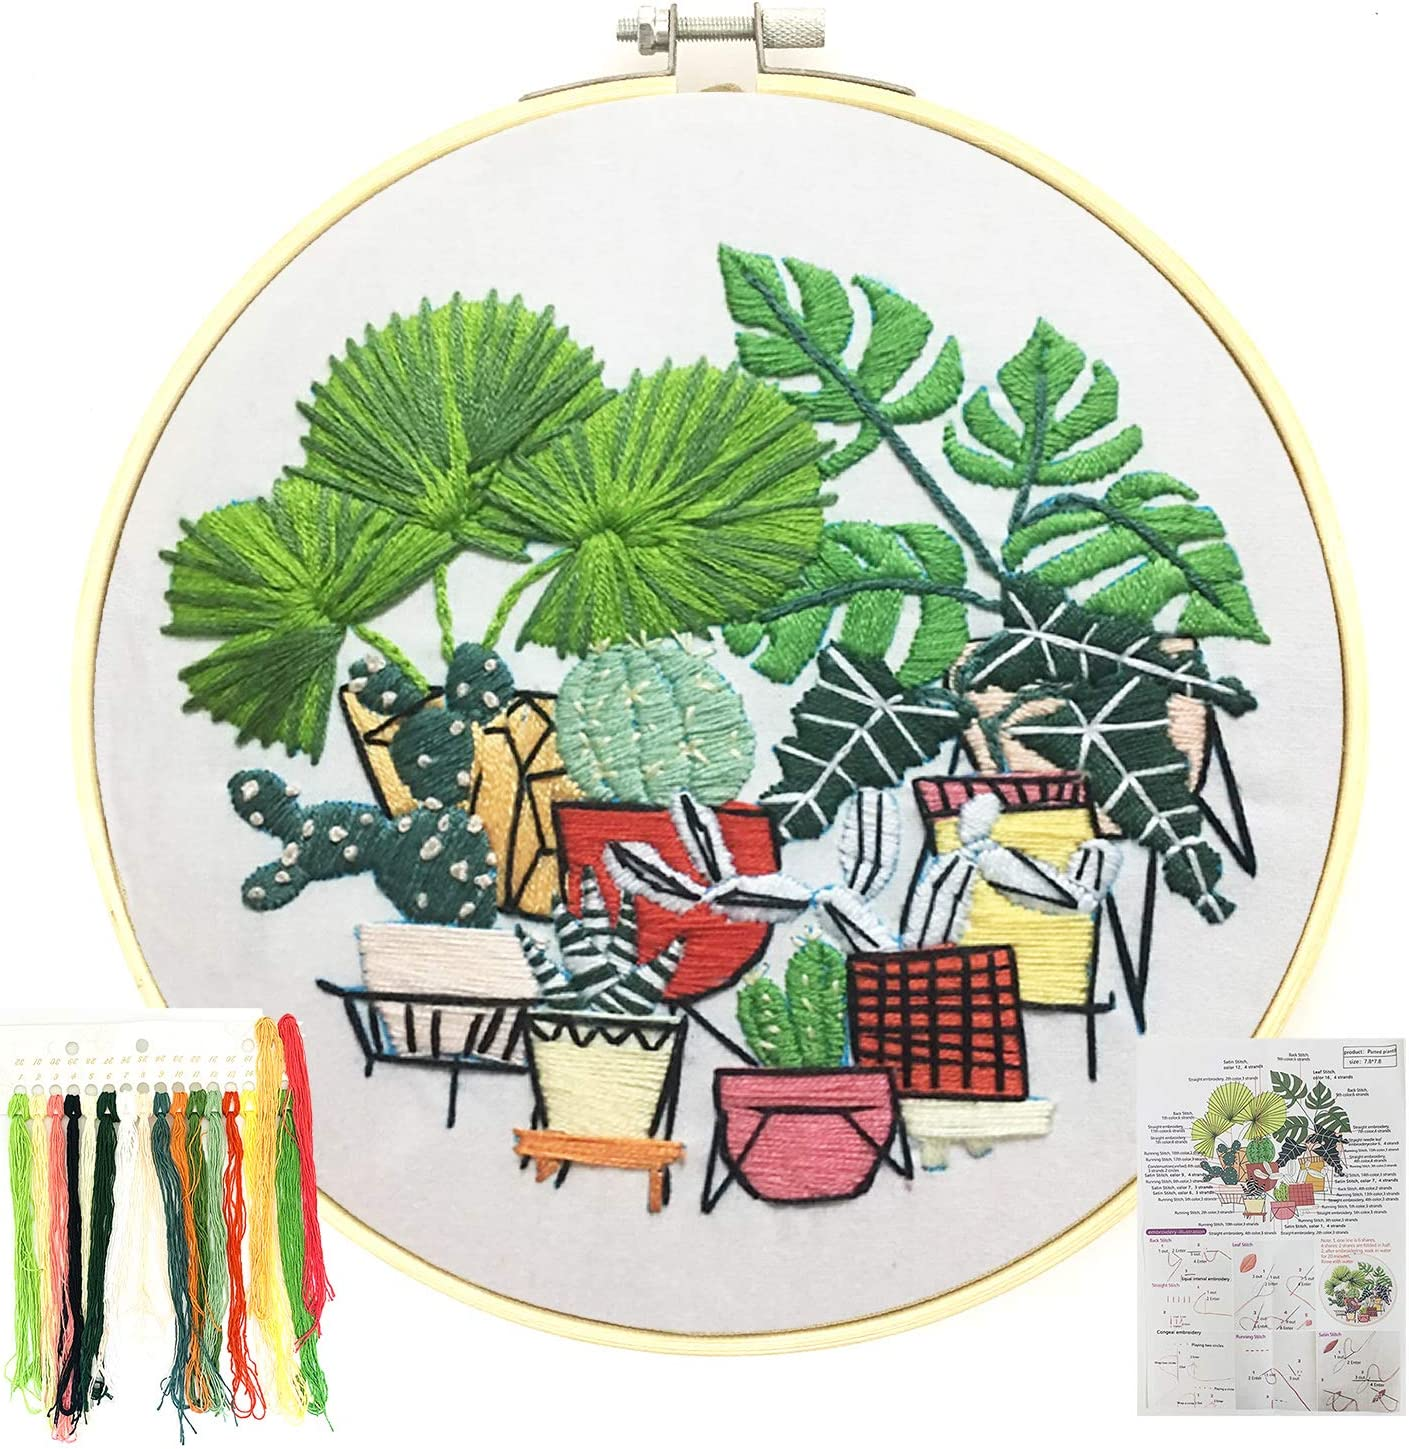 Free Amazon Promo Code 2020 for 3 Pack Embroidery Kit for Beginners